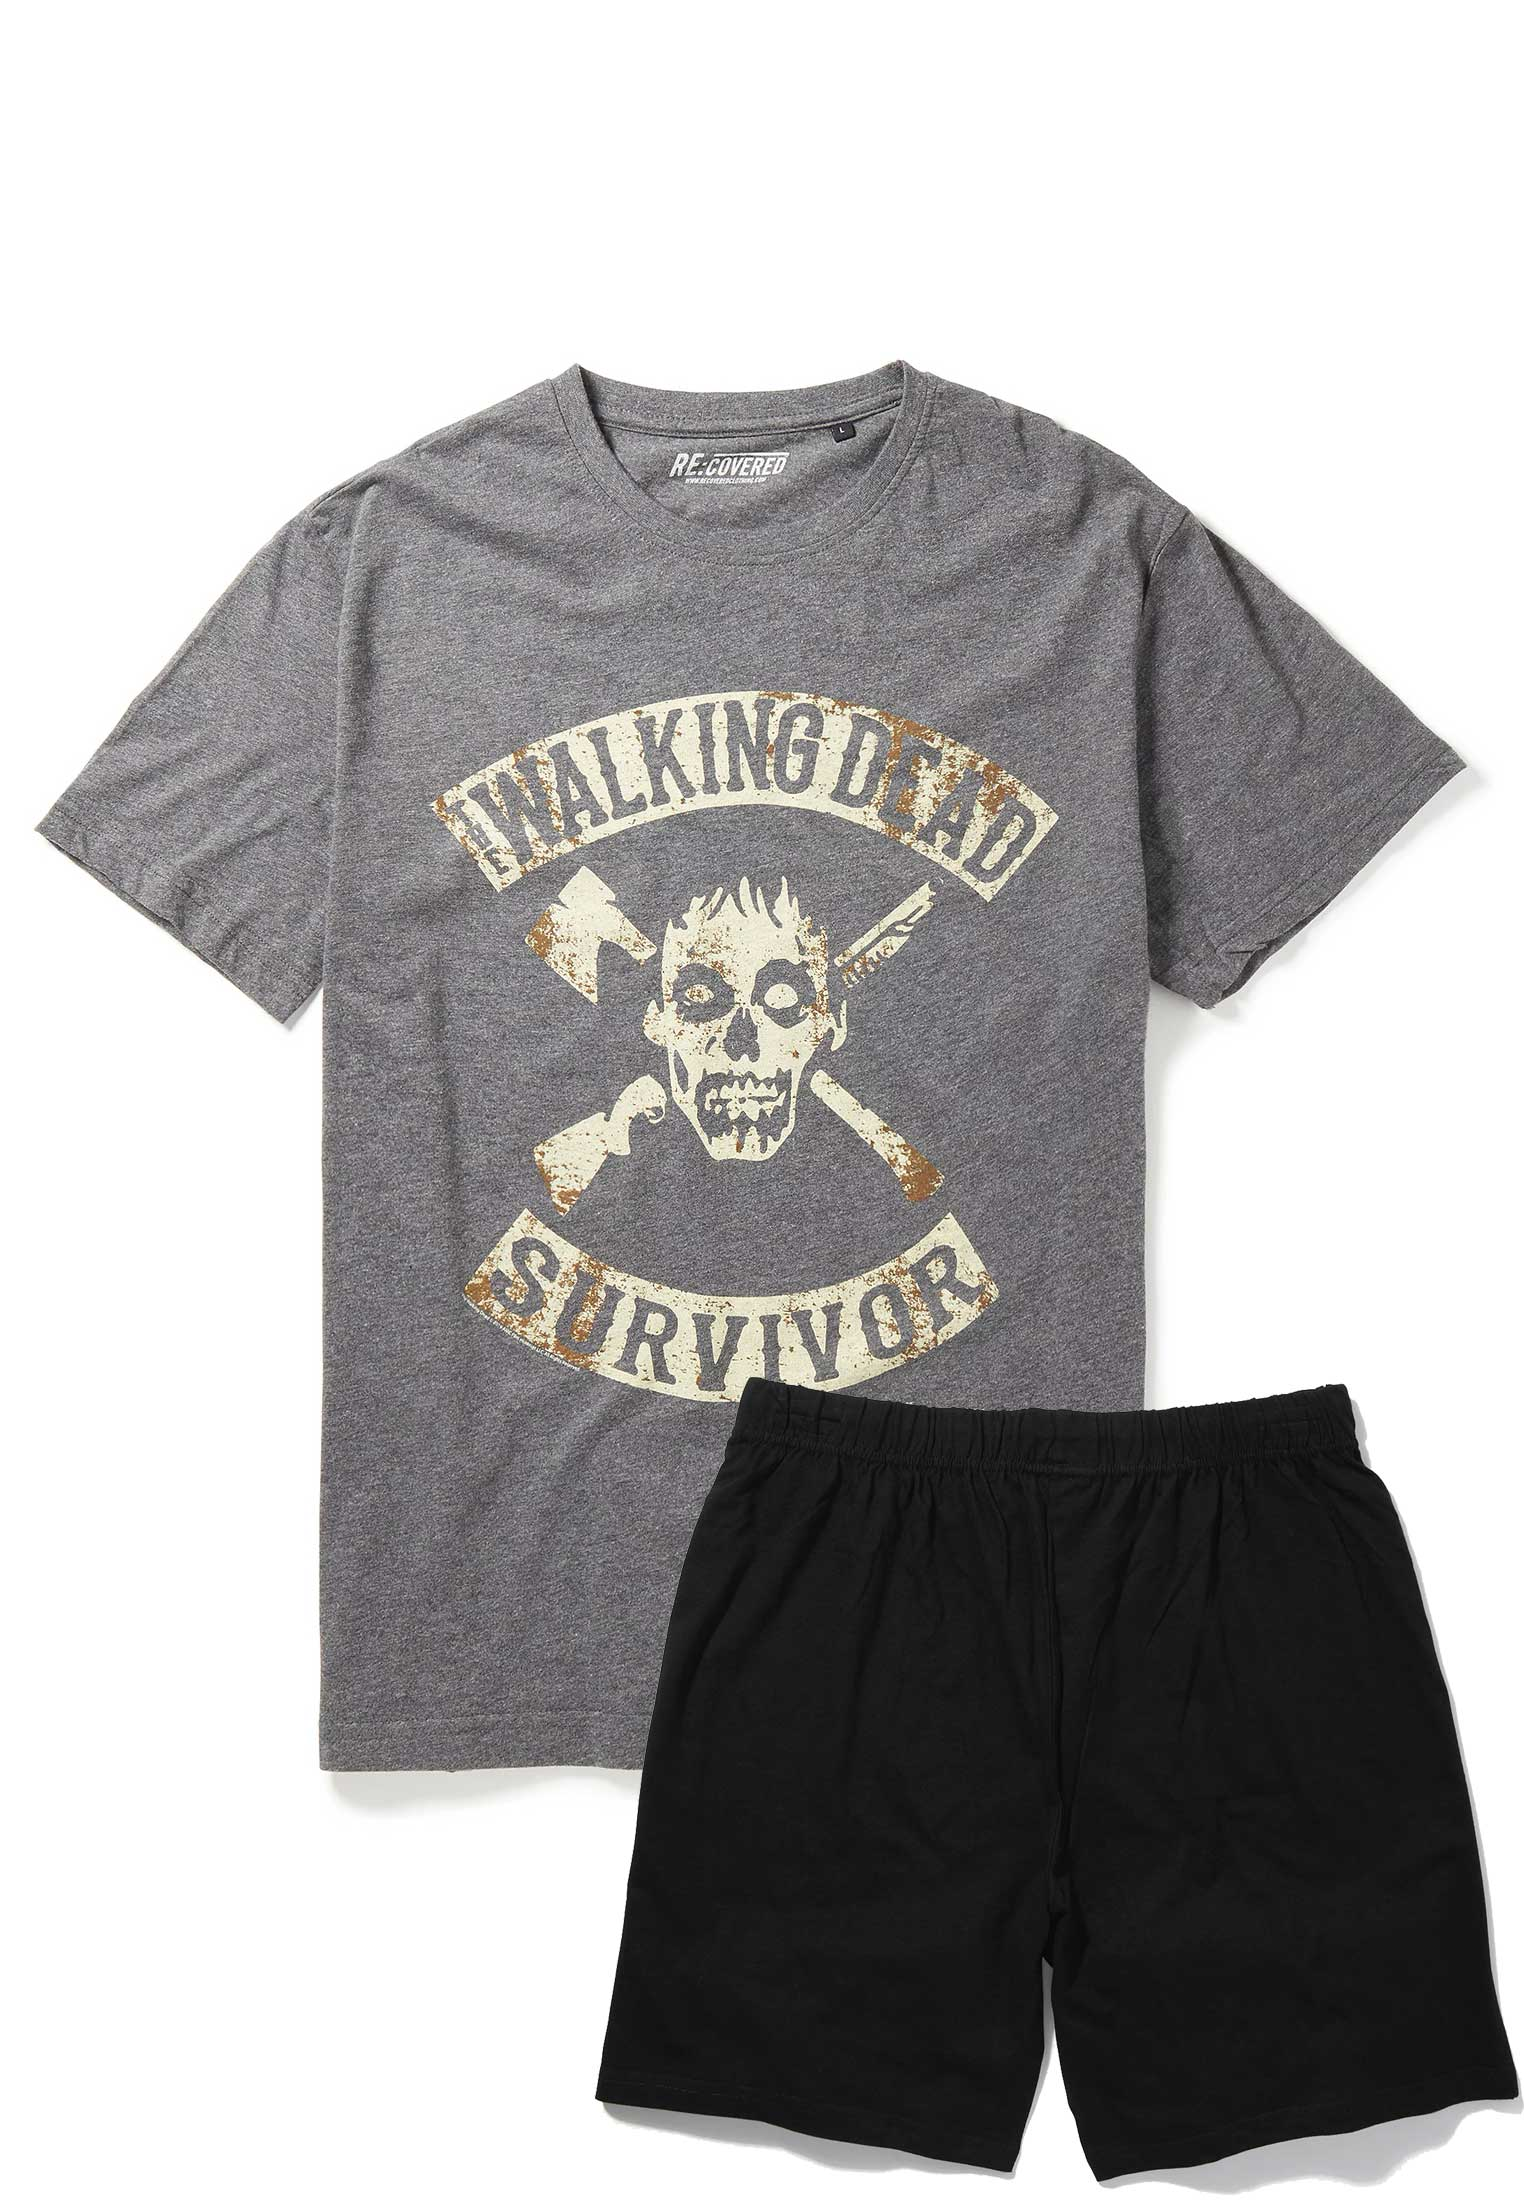 Recovered The Walking Dead Surviour Charcoal and Black Pyjama Set